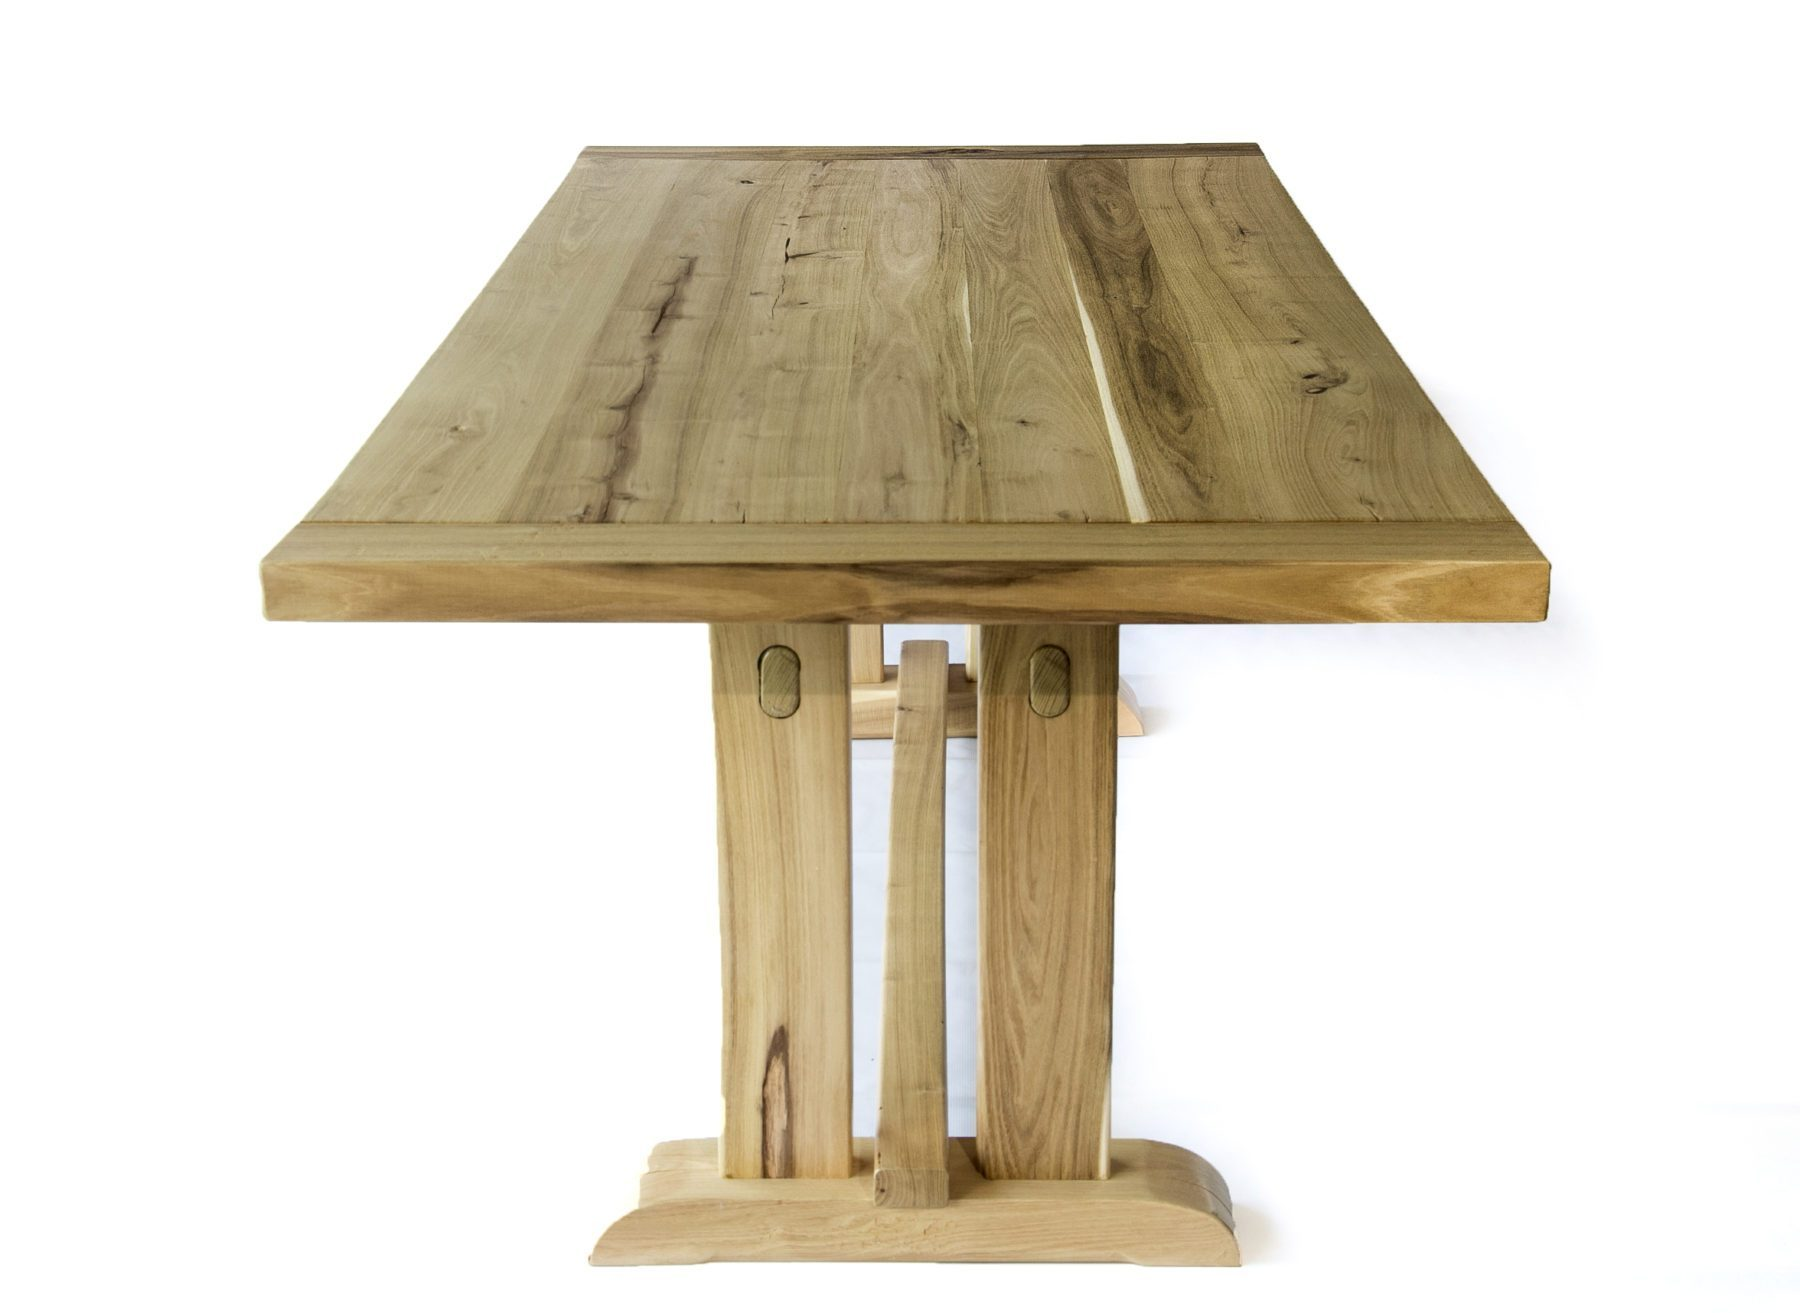 Handcrafted solid acacia reclaimed wood handmade trestle dining table - Handmade wooden dining tables ...